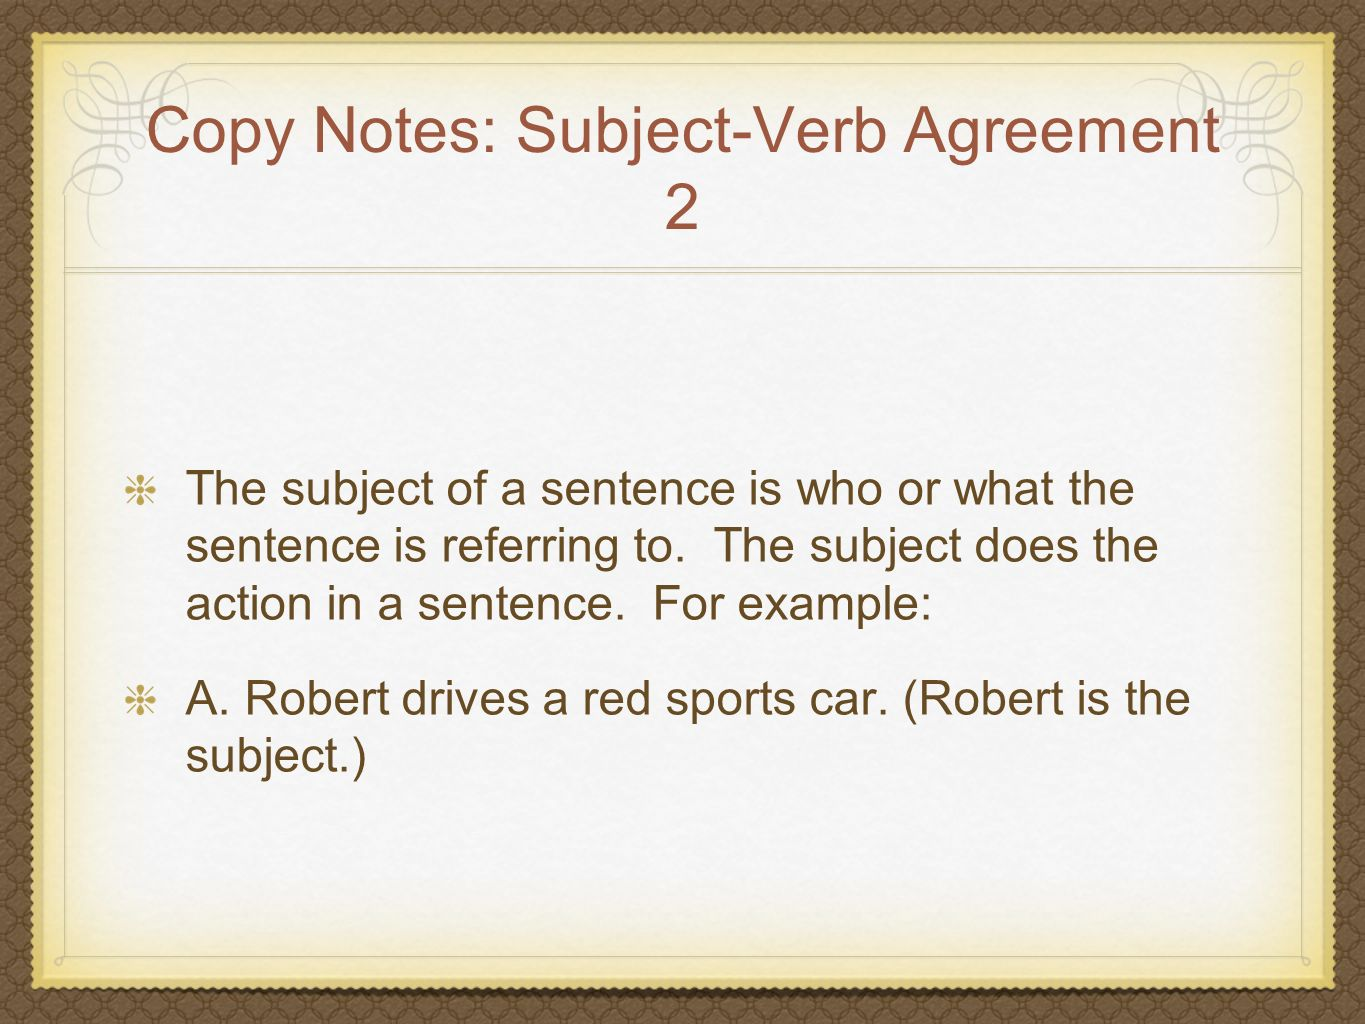 Copy Notes: Subject-Verb Agreement 2 The subject of a sentence is who or what the sentence is referring to. The subject does the action in a sentence.